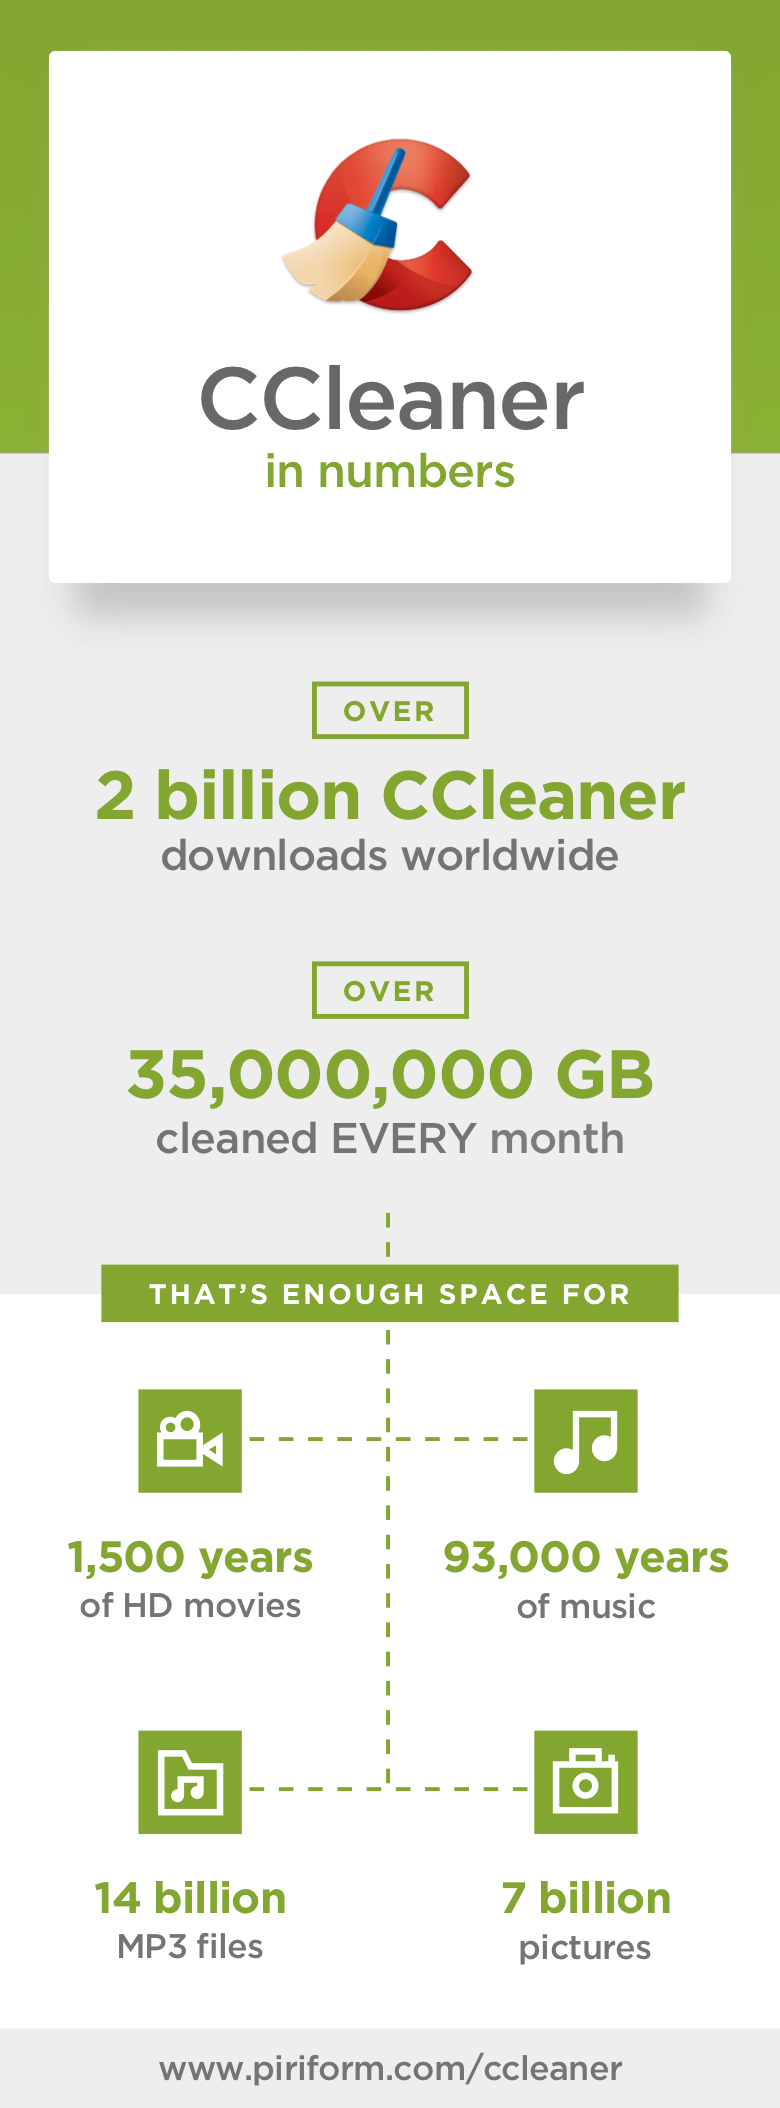 CCleaner in numbers